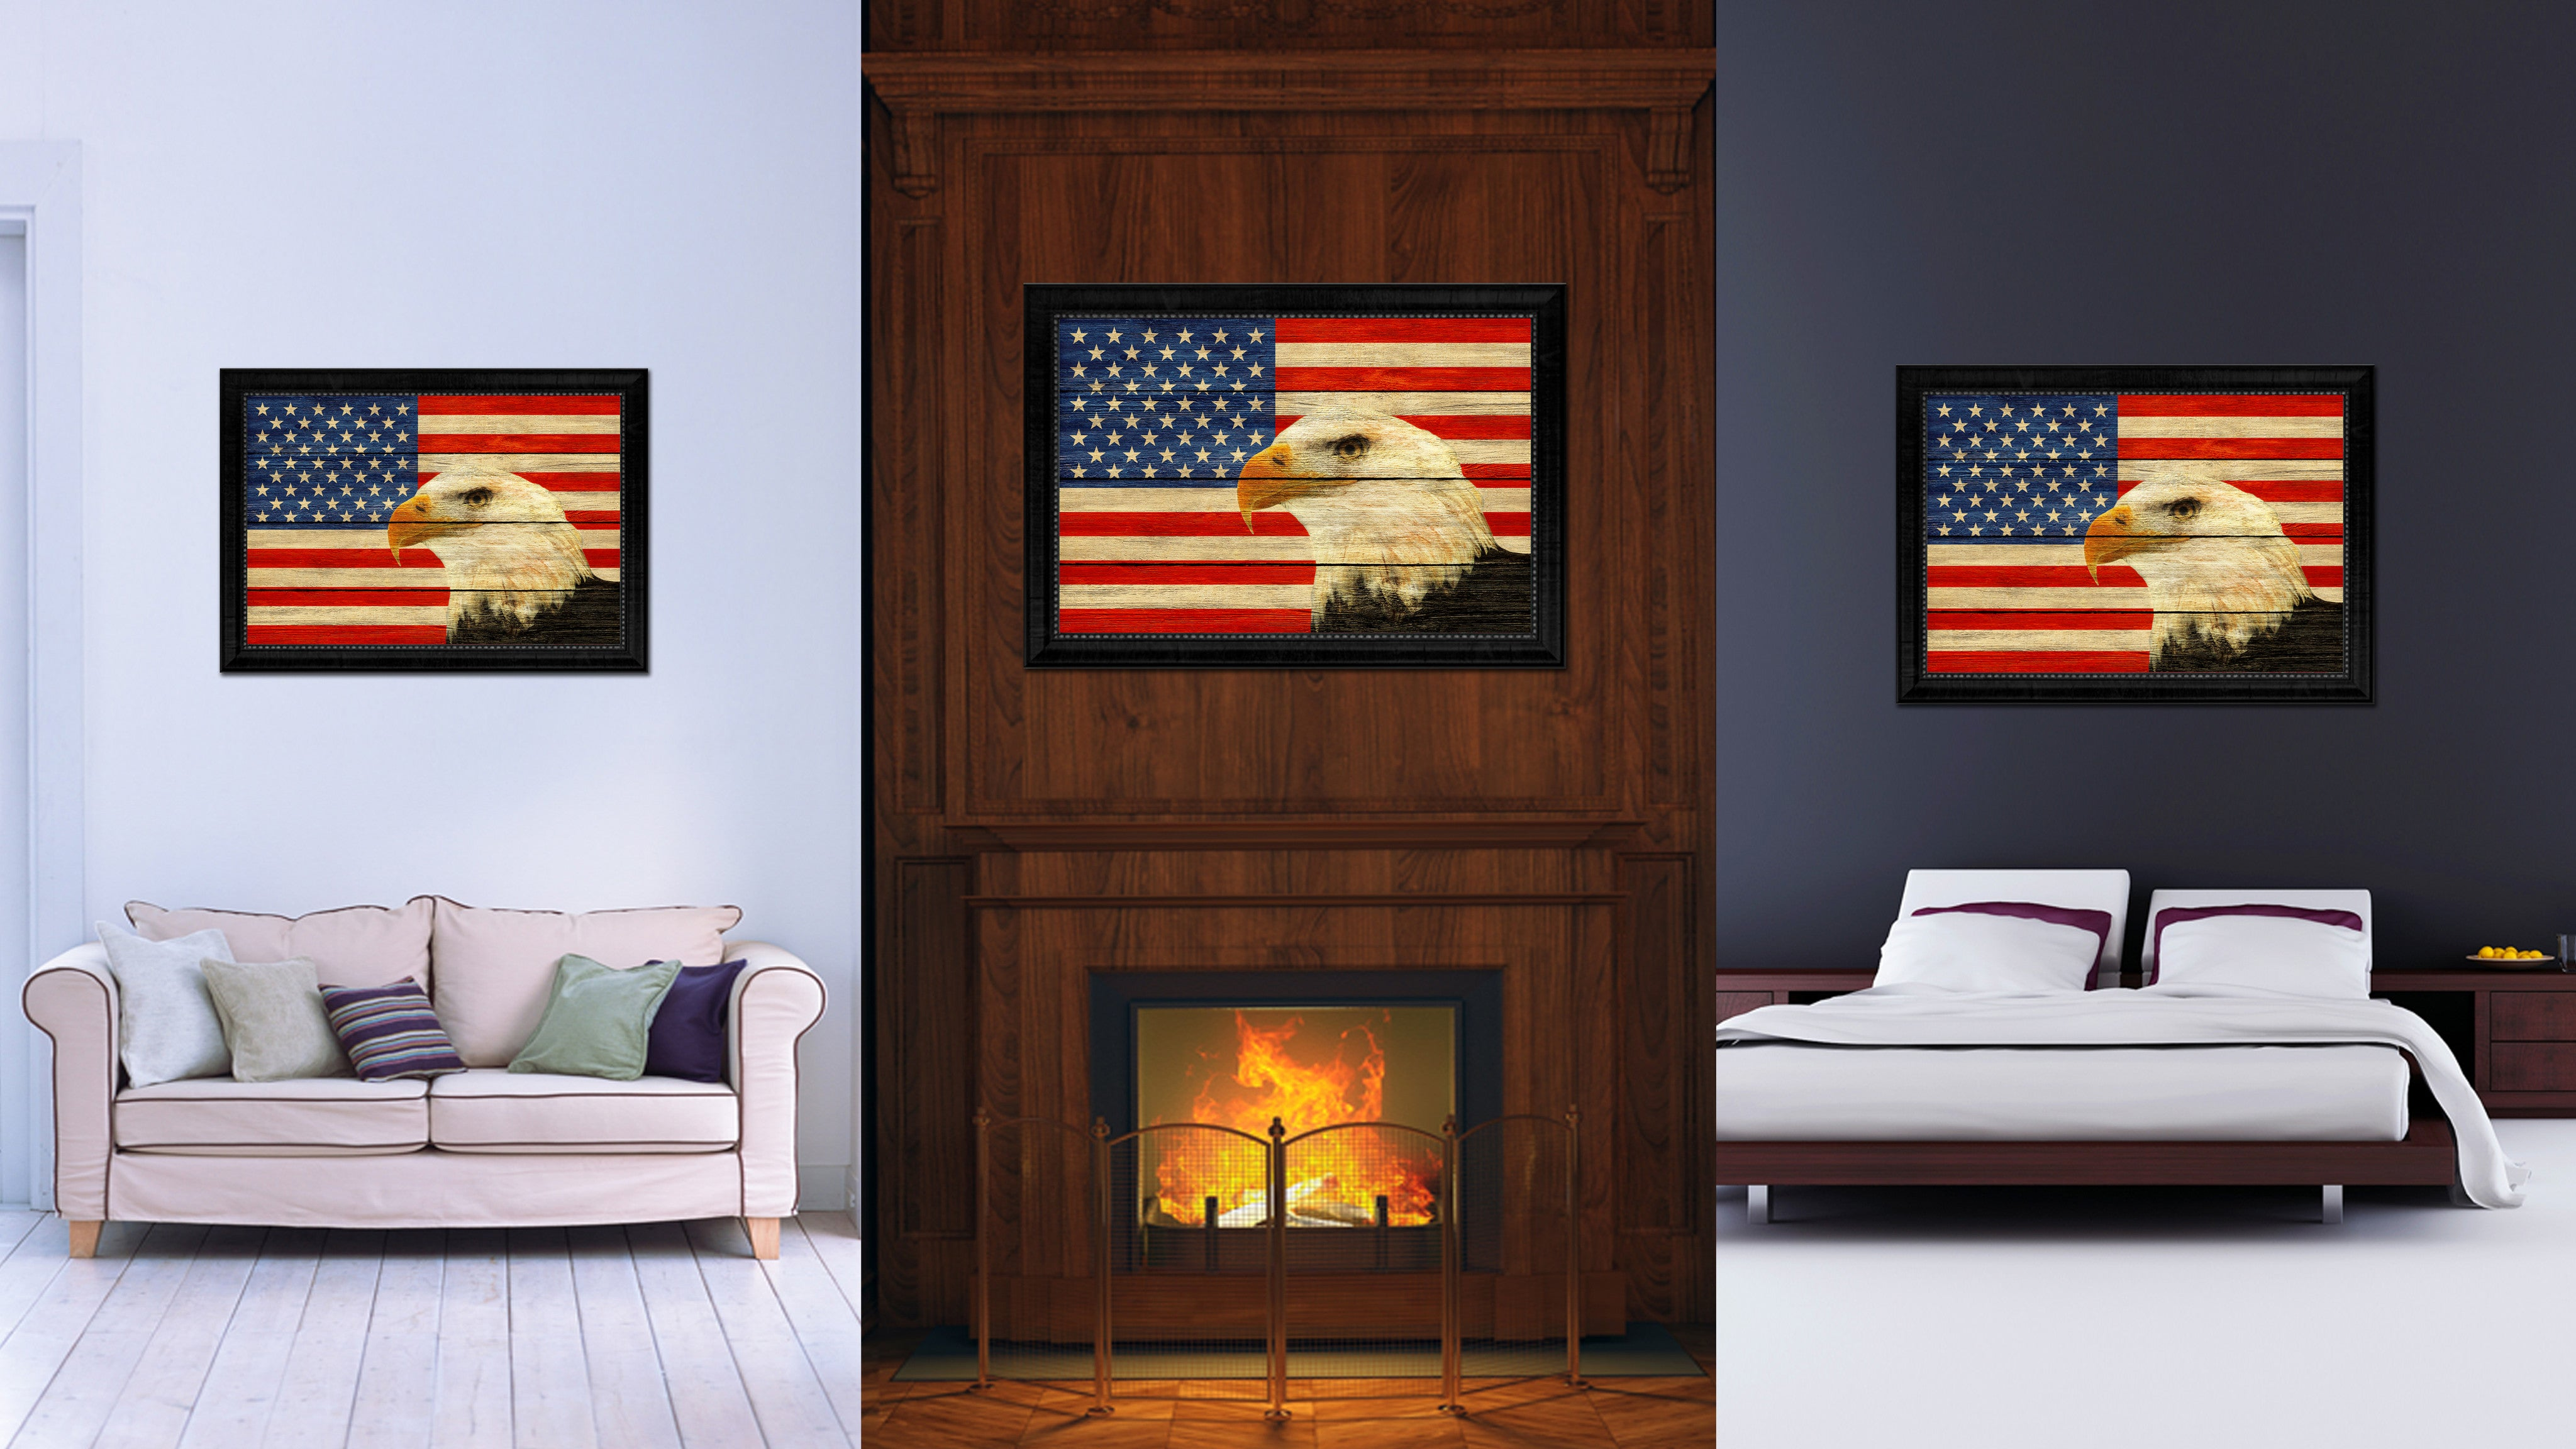 USA Eagle American Flag Texture Canvas Print With Black Picture Frame Home Decor Man Cave Wall